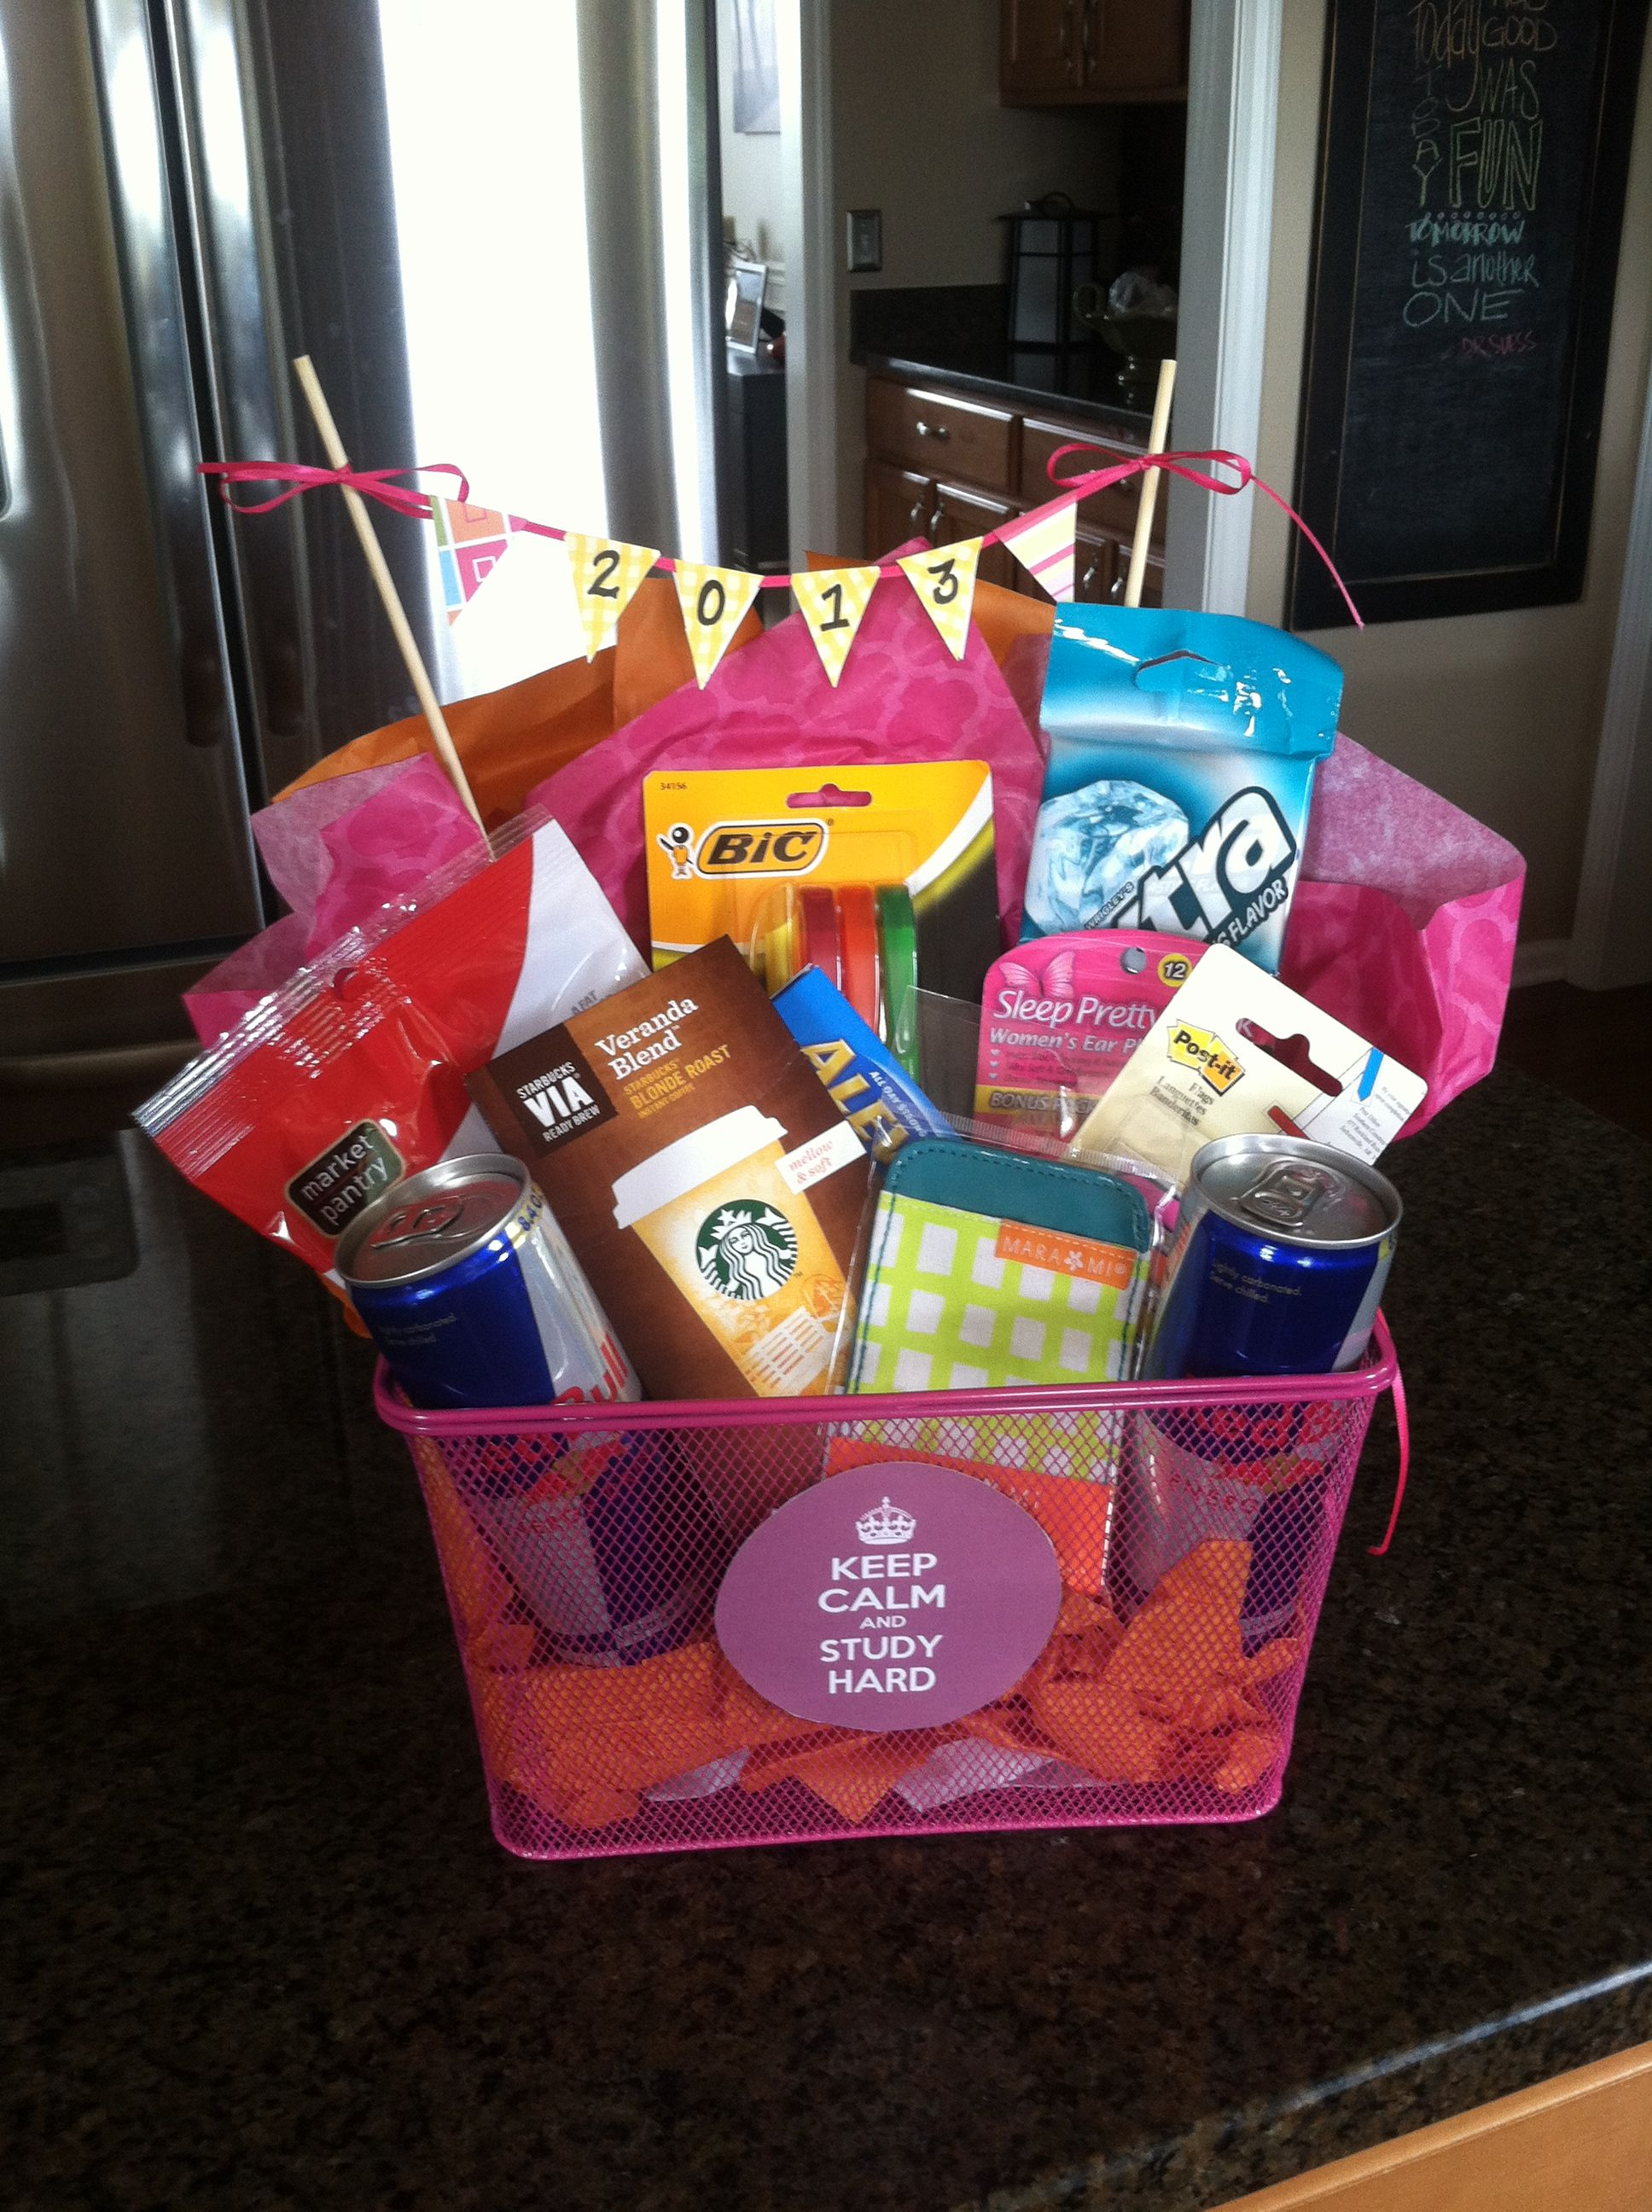 off to college gift basket, study gift basket, graduation gift